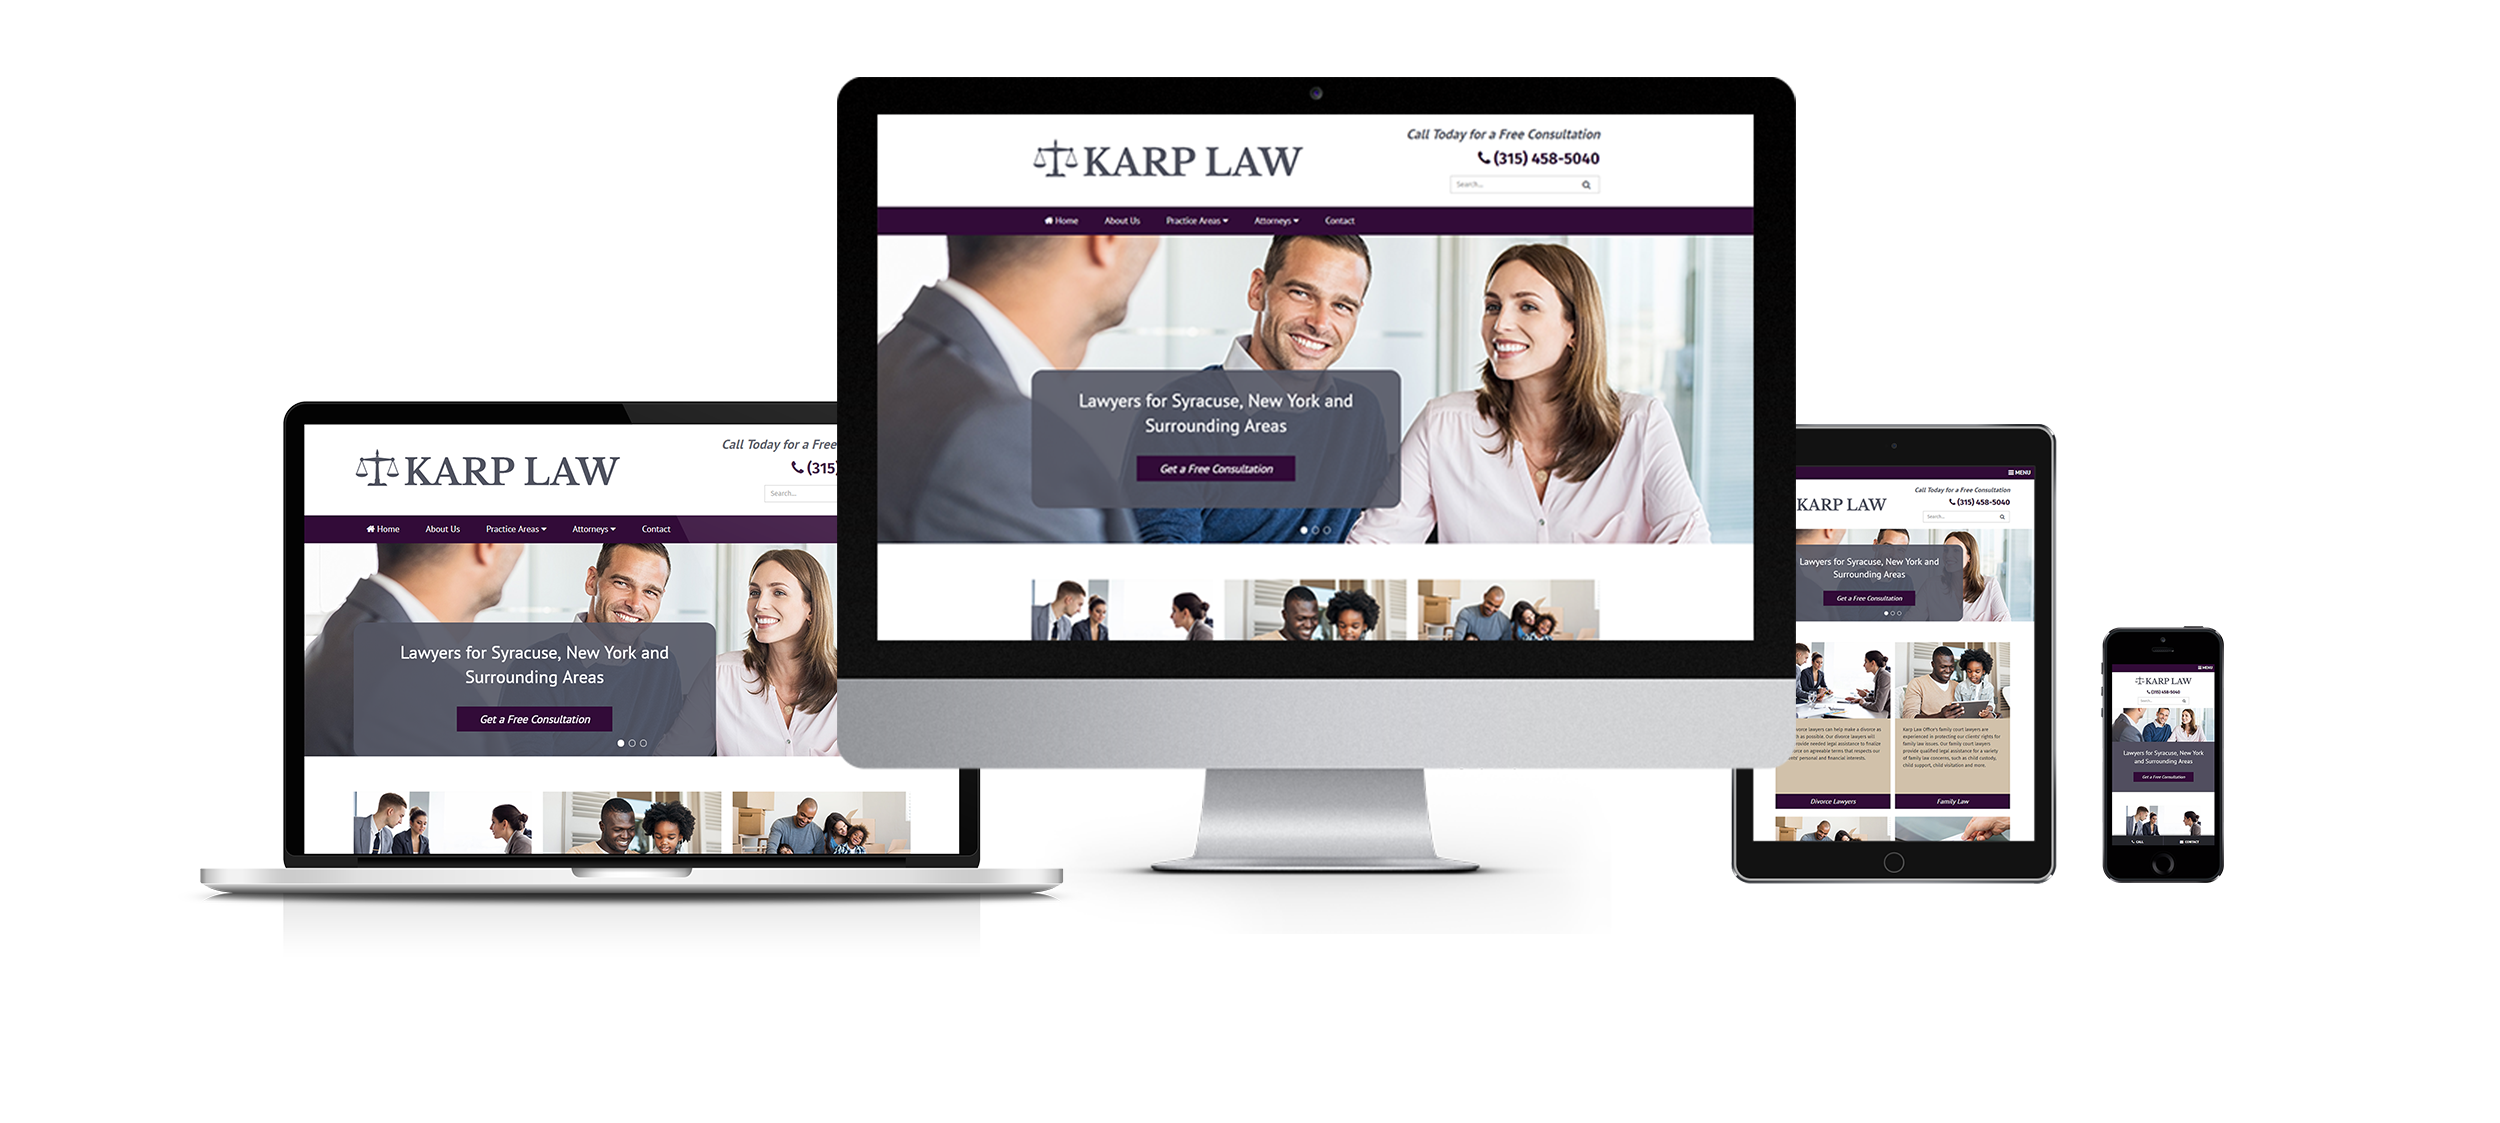 law office web design image of karp law office responsive website design view full width